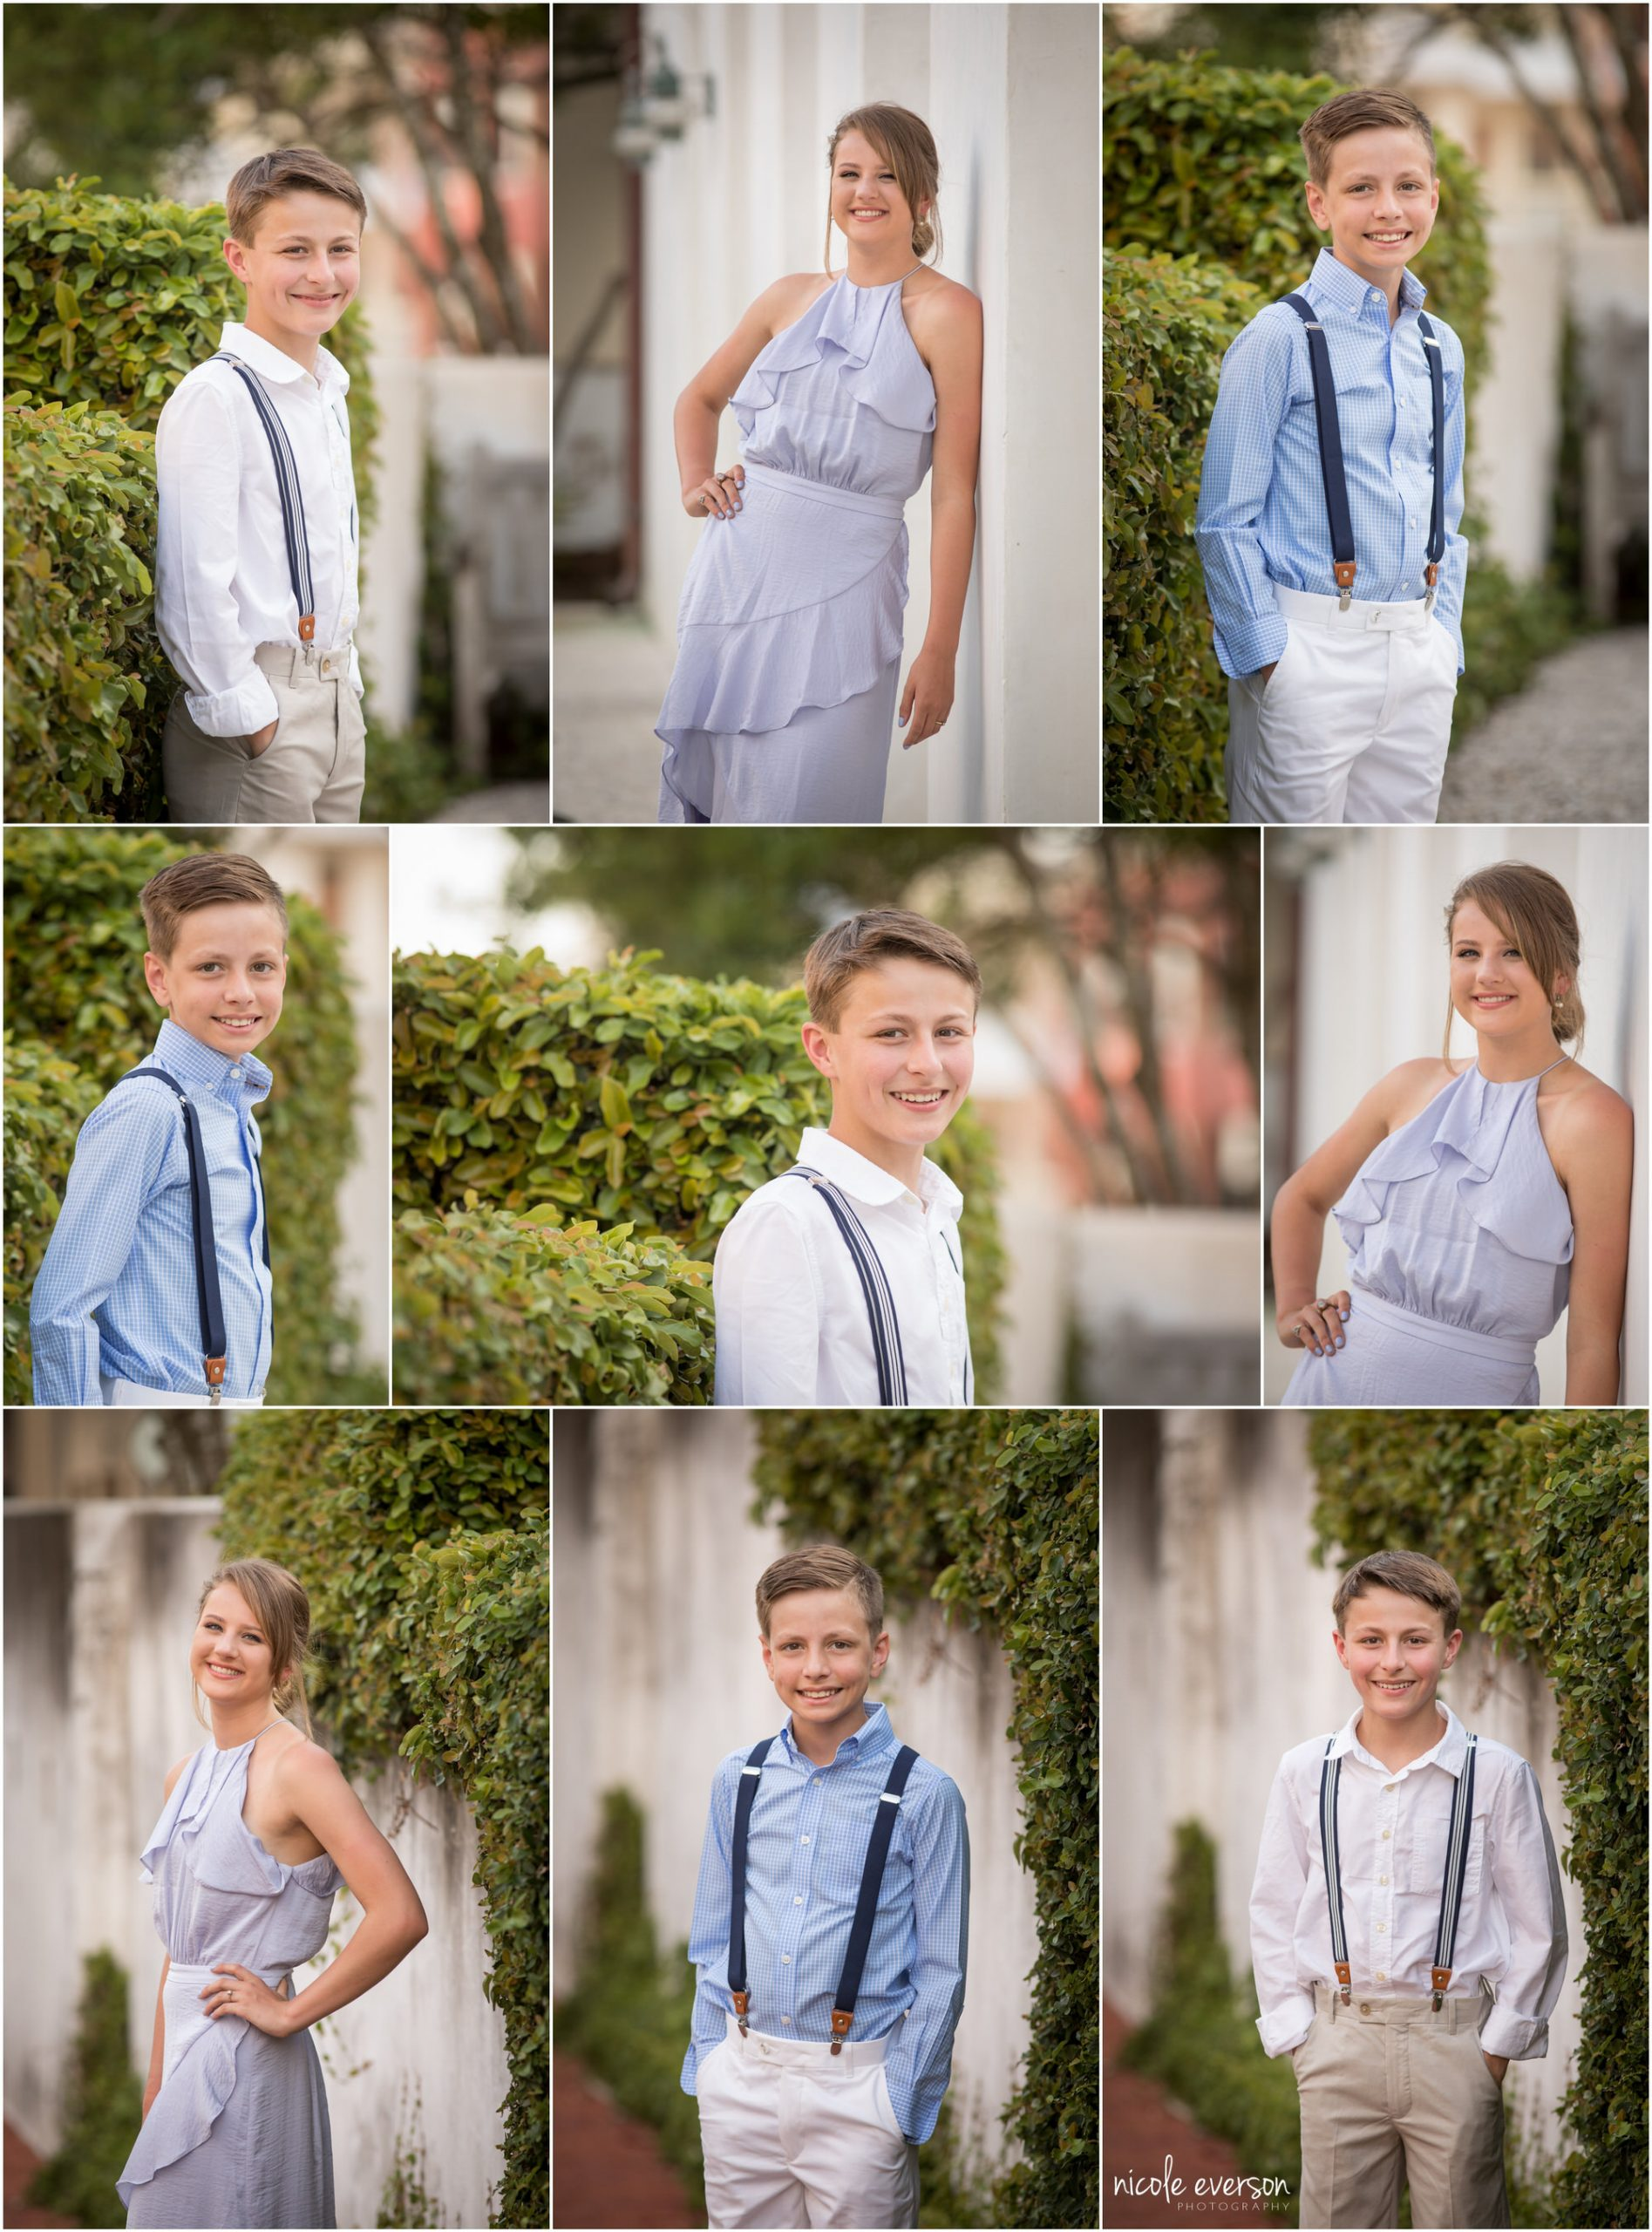 Individual sibling photographs, Rosemary Beach. Nicole Everson Photography.